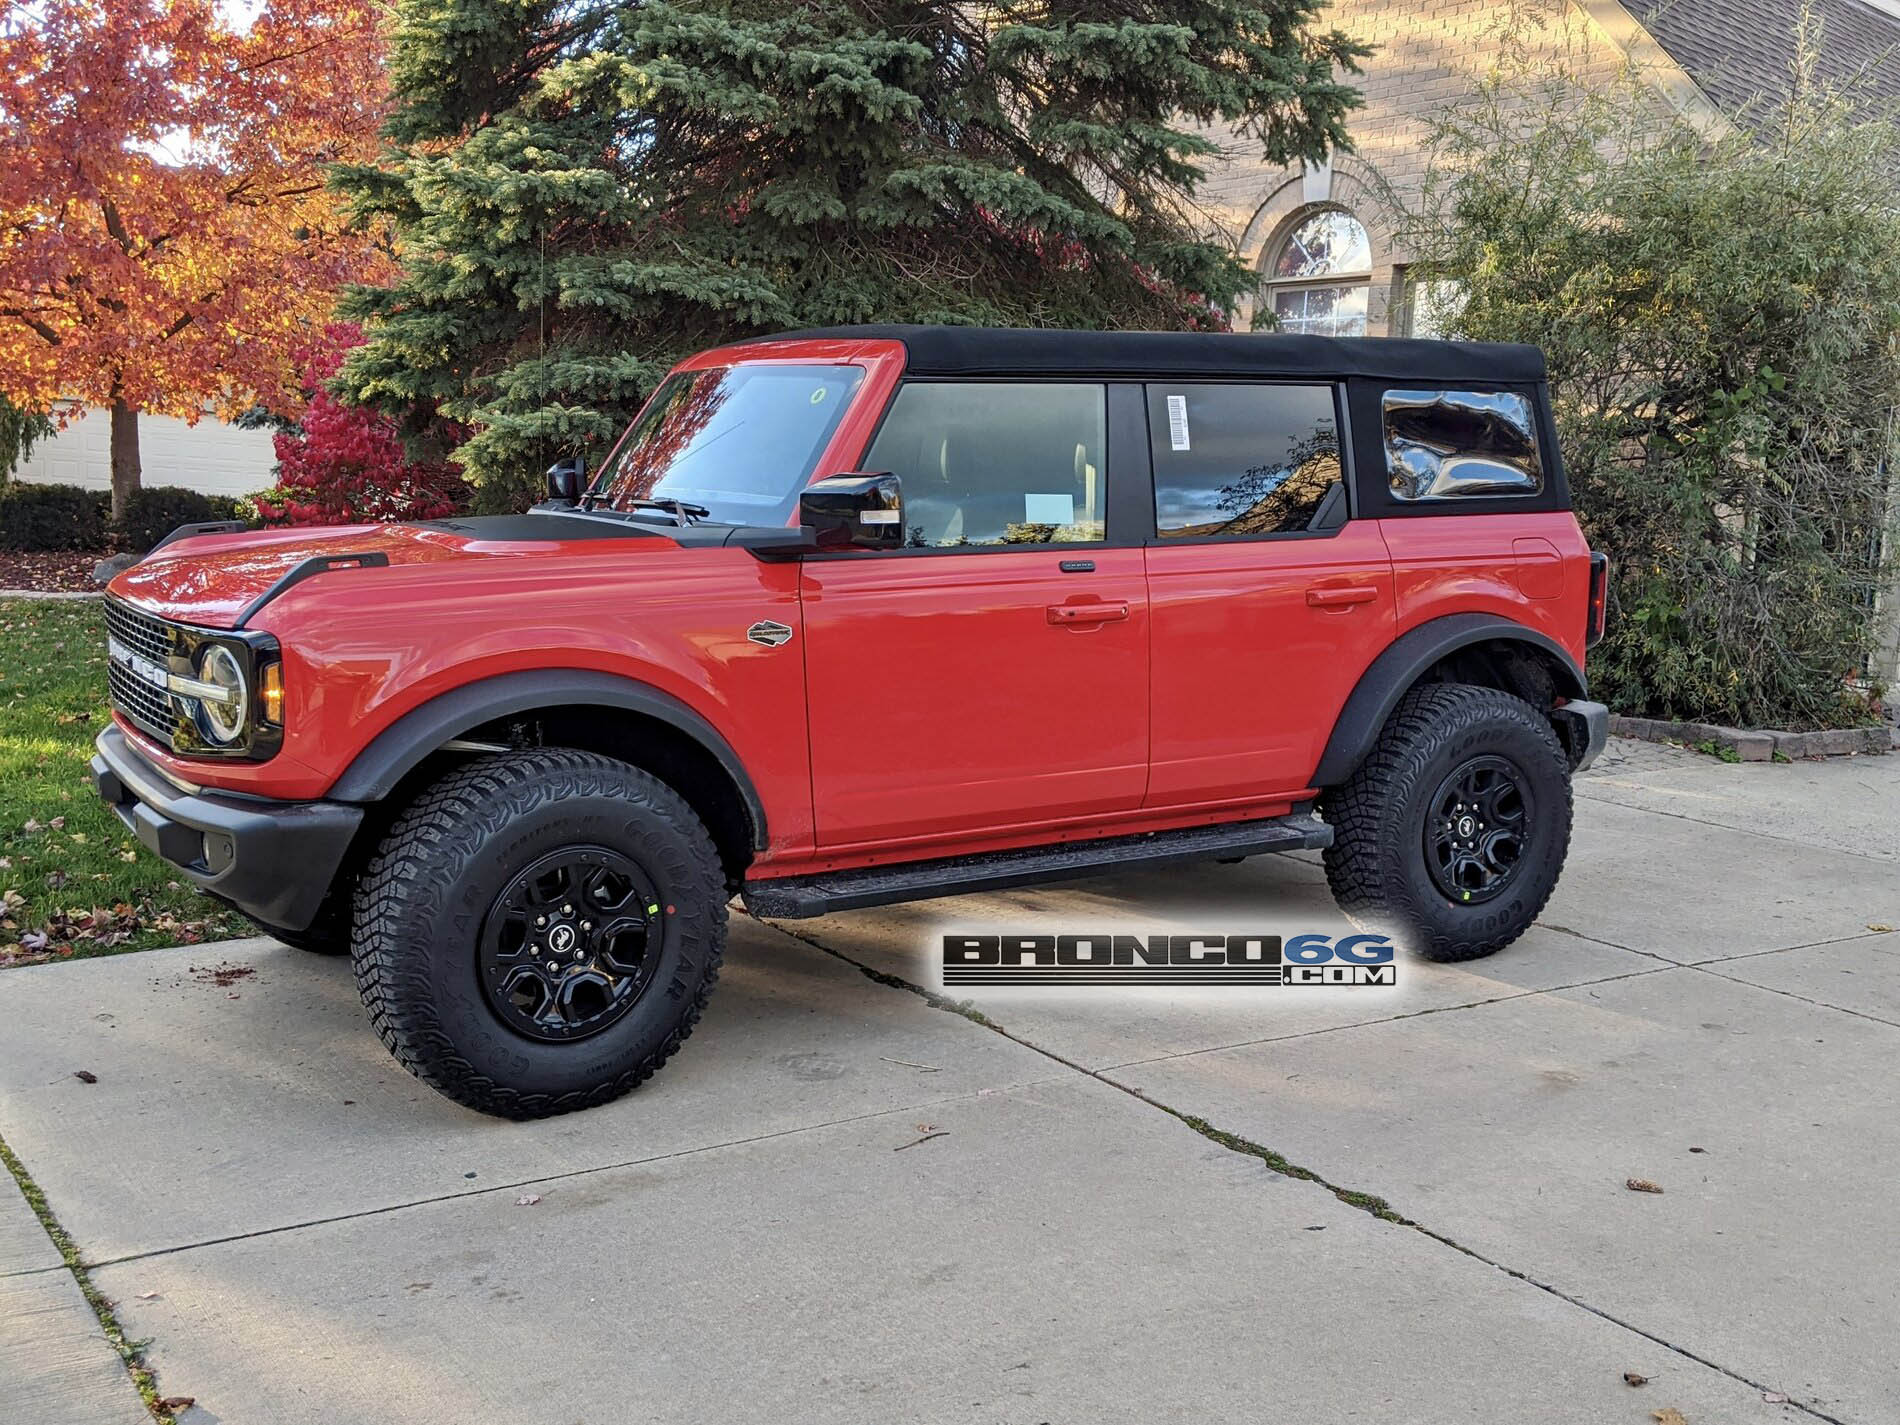 Neighbor S Ford Bronco 4 Door Wildtrack Was Easy To Spot Cause Of Race Red Look Autoevolution